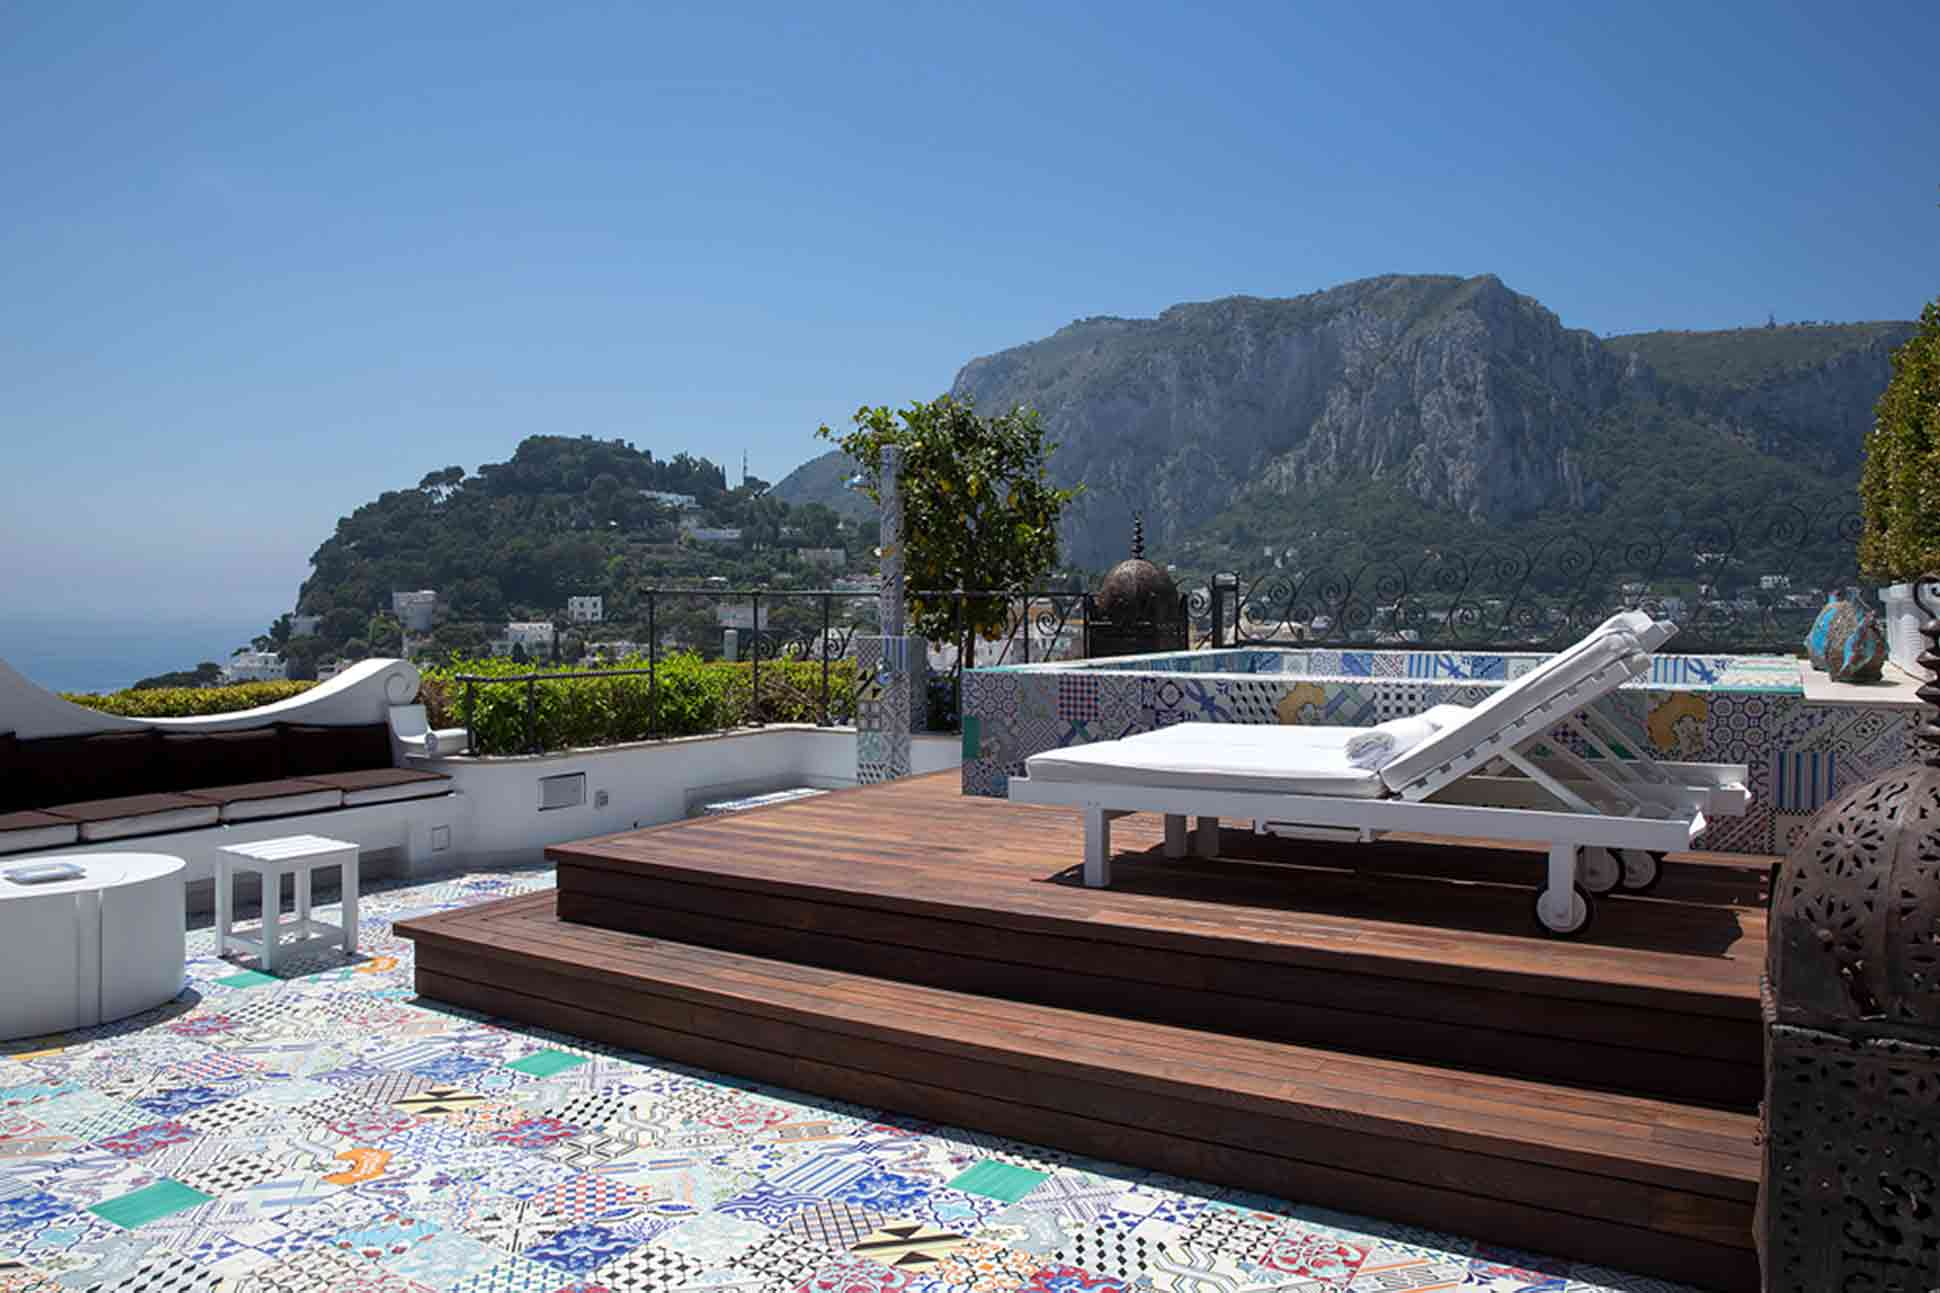 View from the Bellevue Suite at the Capri Tiberio Palace